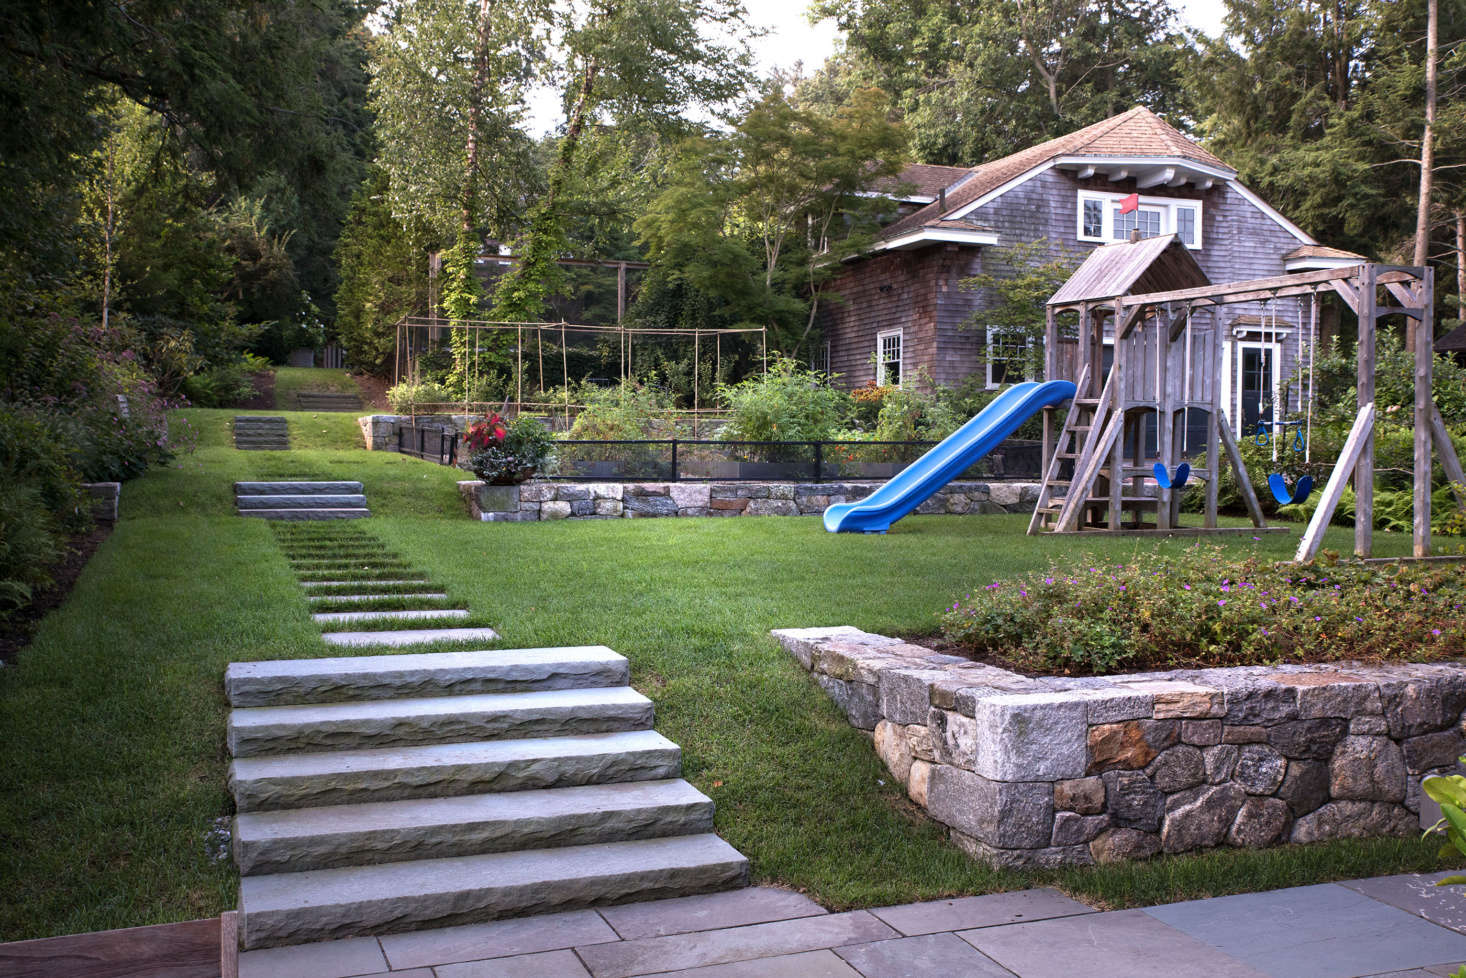 Though it it looks like a single, cohesive space, the backyard actually has a series of five gently graded terraces. At various elevations are a tennis court (behind the garage); an upper garden with a fountain and berry patch; a lower kitchen garden; a play lawn, and (shown in the foreground) a patio next to the house. Newly constructed hardscaping, including low stone walls and bluestone pathways, defines each distinct space and creates visual unity.